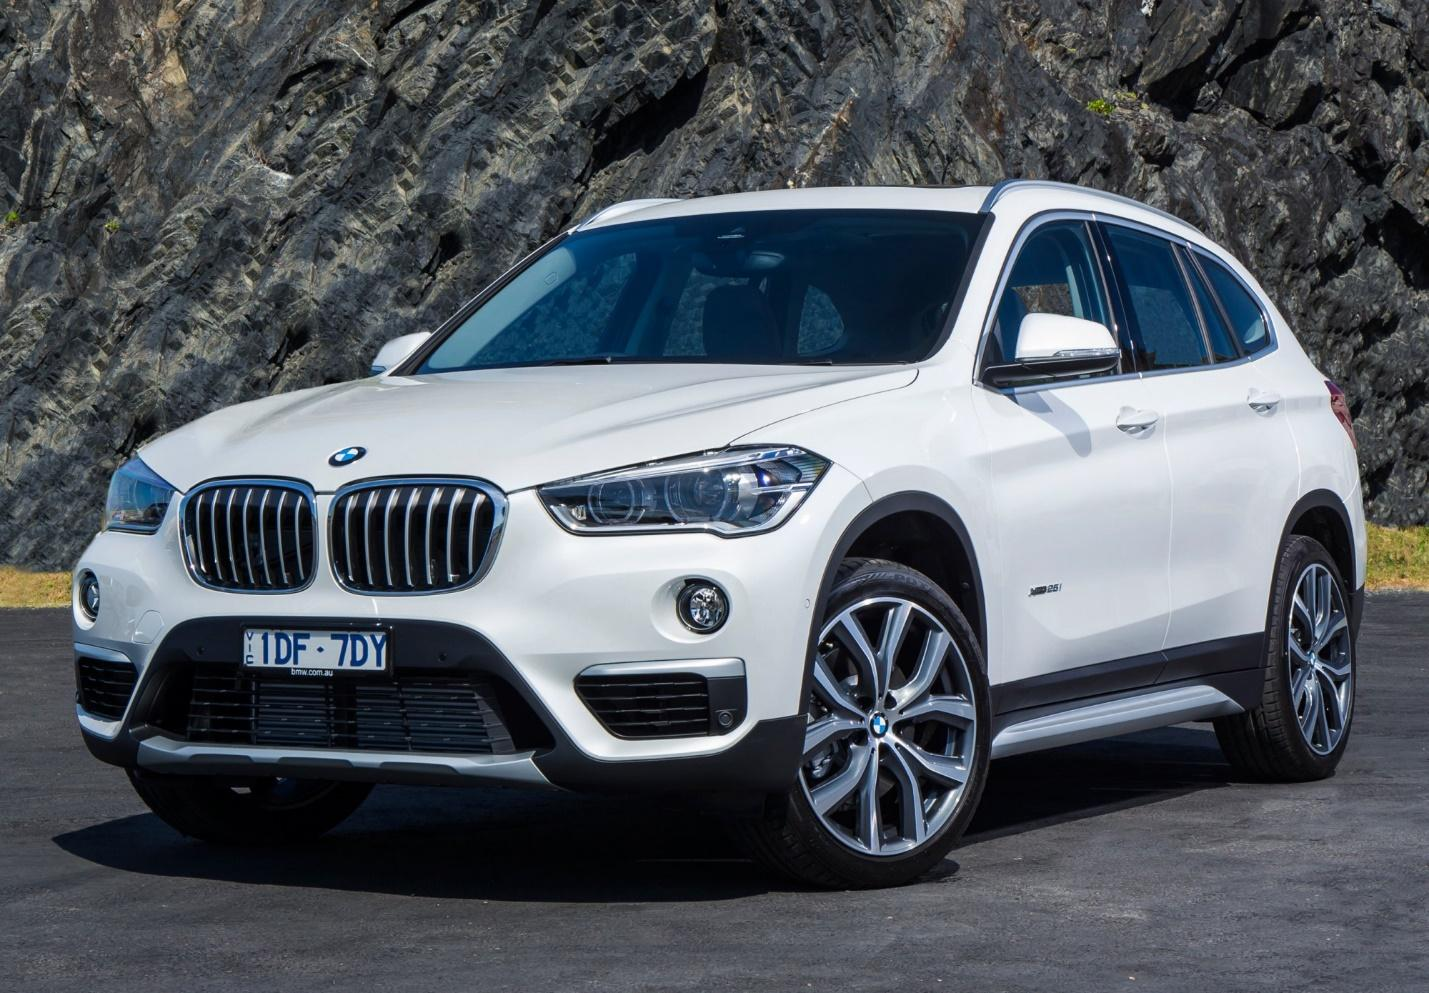 https://cdn.carshowroom.com.au/media/21466919/2017-bmw-x1-xdrive25i-x-line-03.jpg